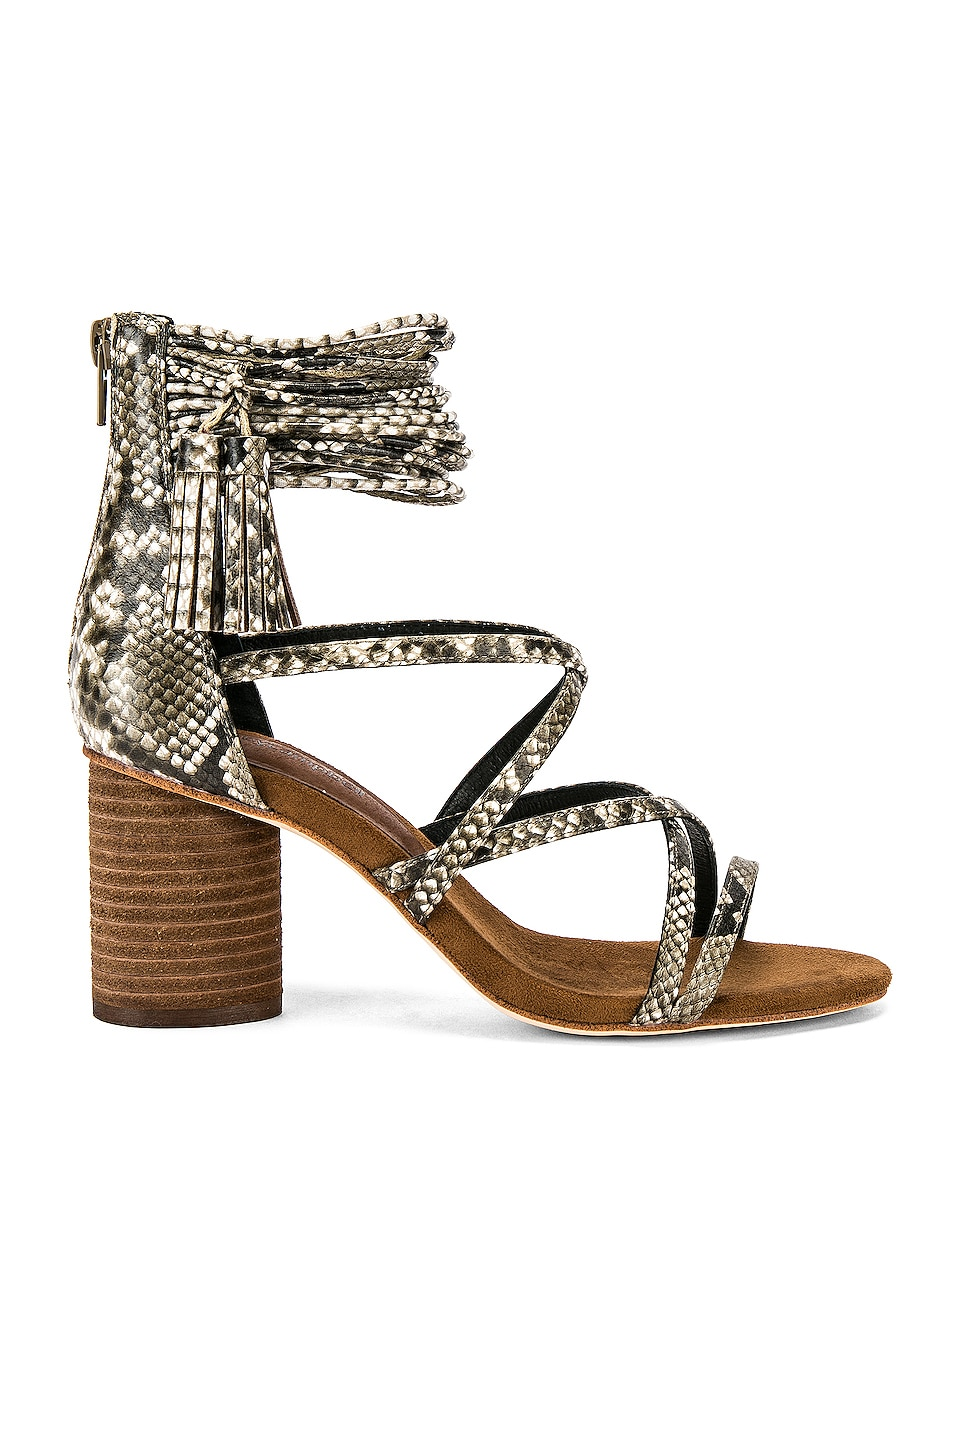 Jeffrey Campbell Despina Sandal in Natural Python Combo